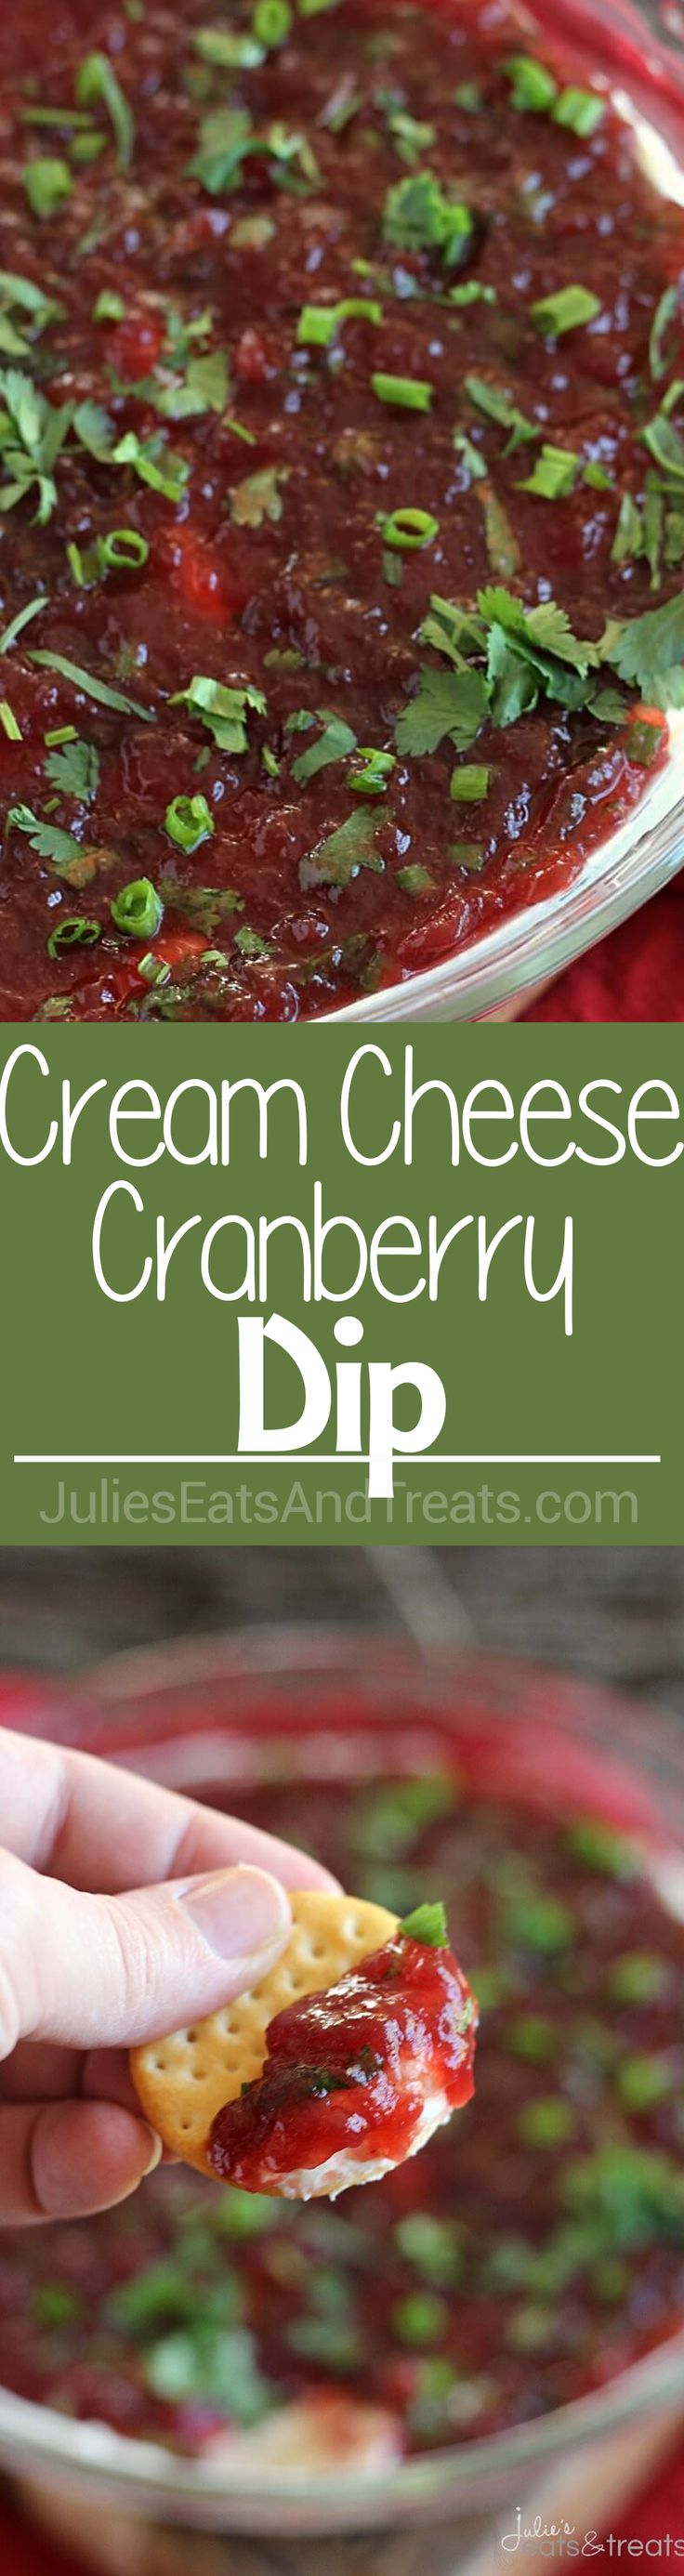 Cream Cheese Cranberry Dip ~ Easy, Delicious Dip Layered With